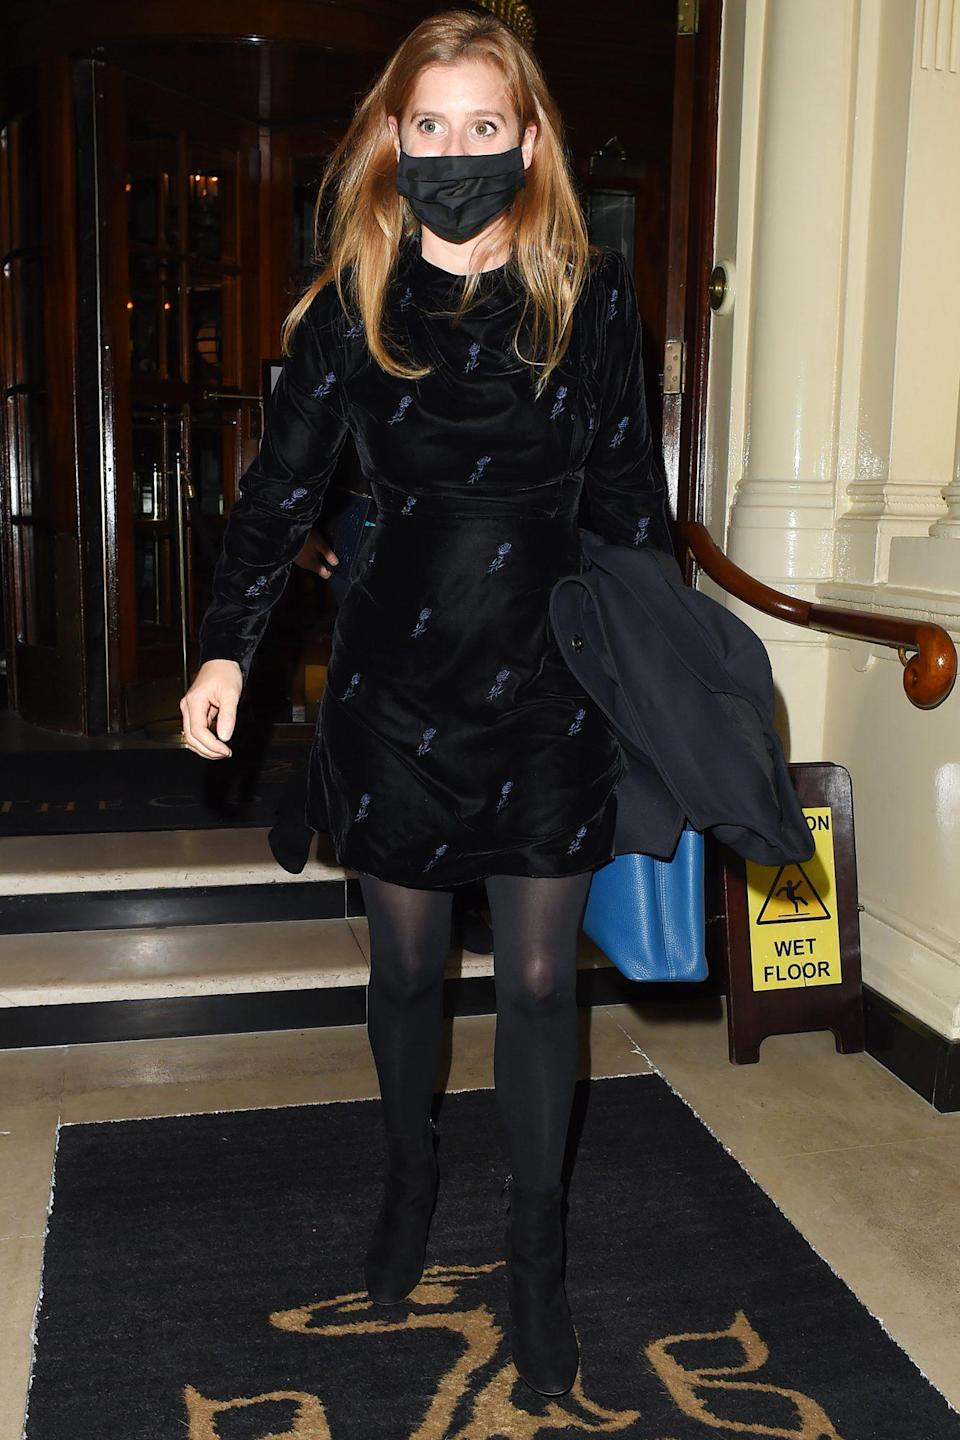 <p>Princess Beatrice is seen leaving The Connaught Hotel in London on Thursday after meeting a friend for dinner. </p>